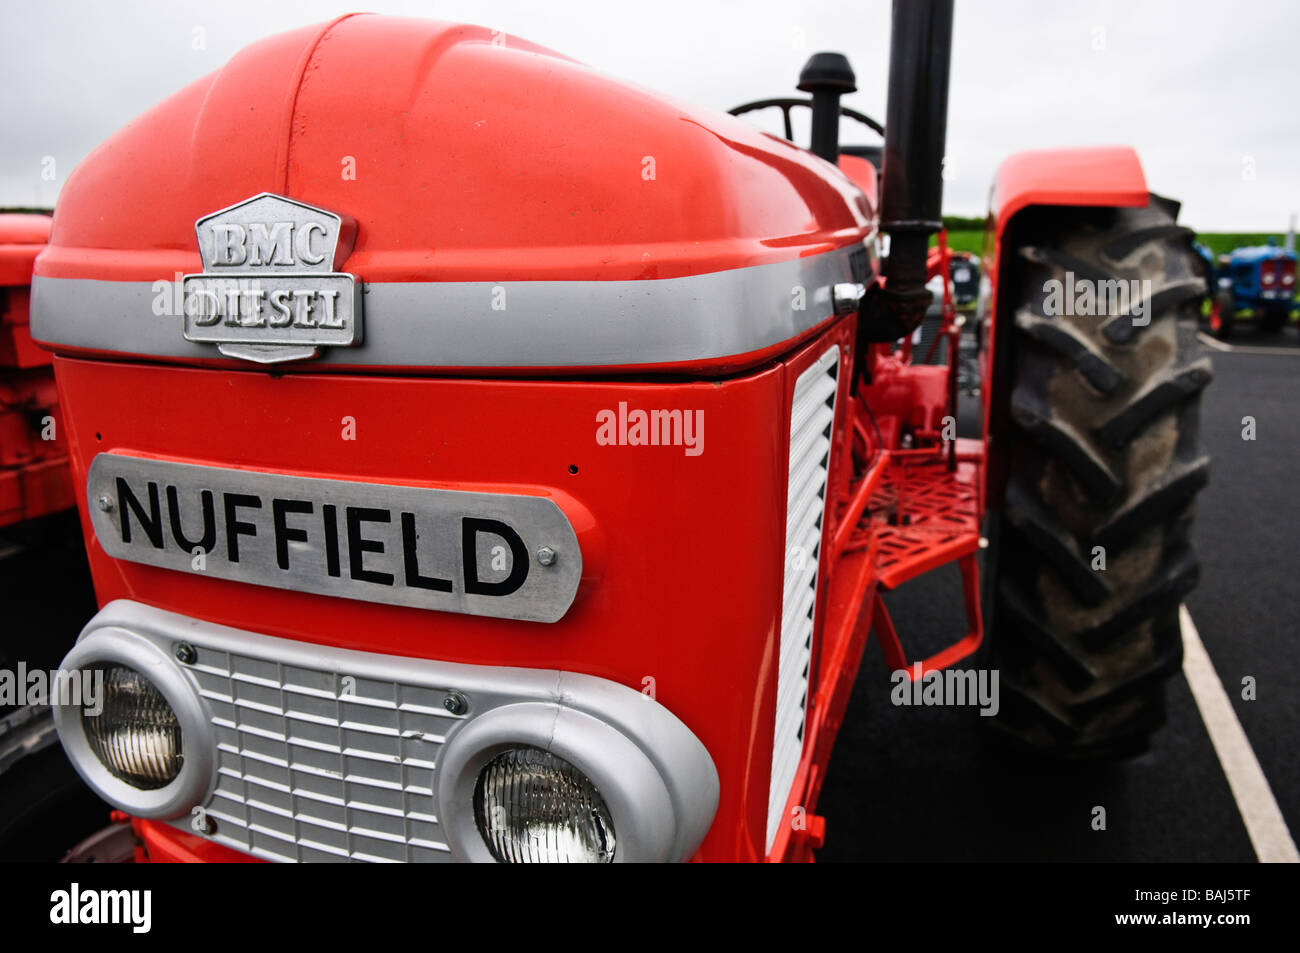 Front of a red Nuffield vintage farm tractor - Stock Image